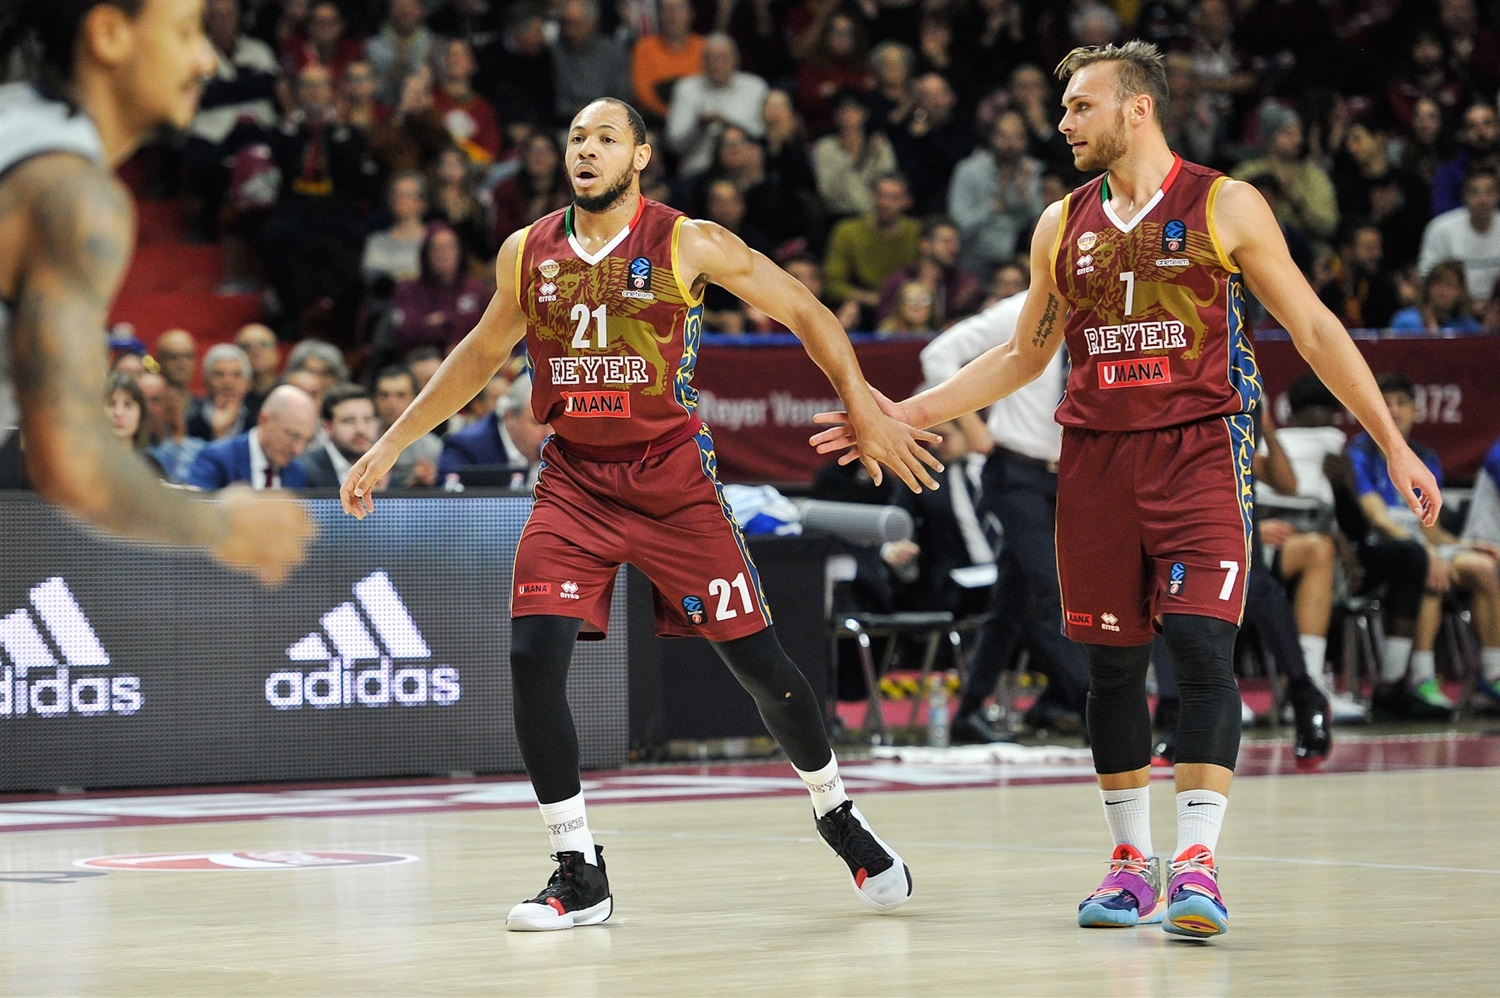 Jeremy Chappell celebrates - Umana Reyer Venice (photo Reyer) - EC19